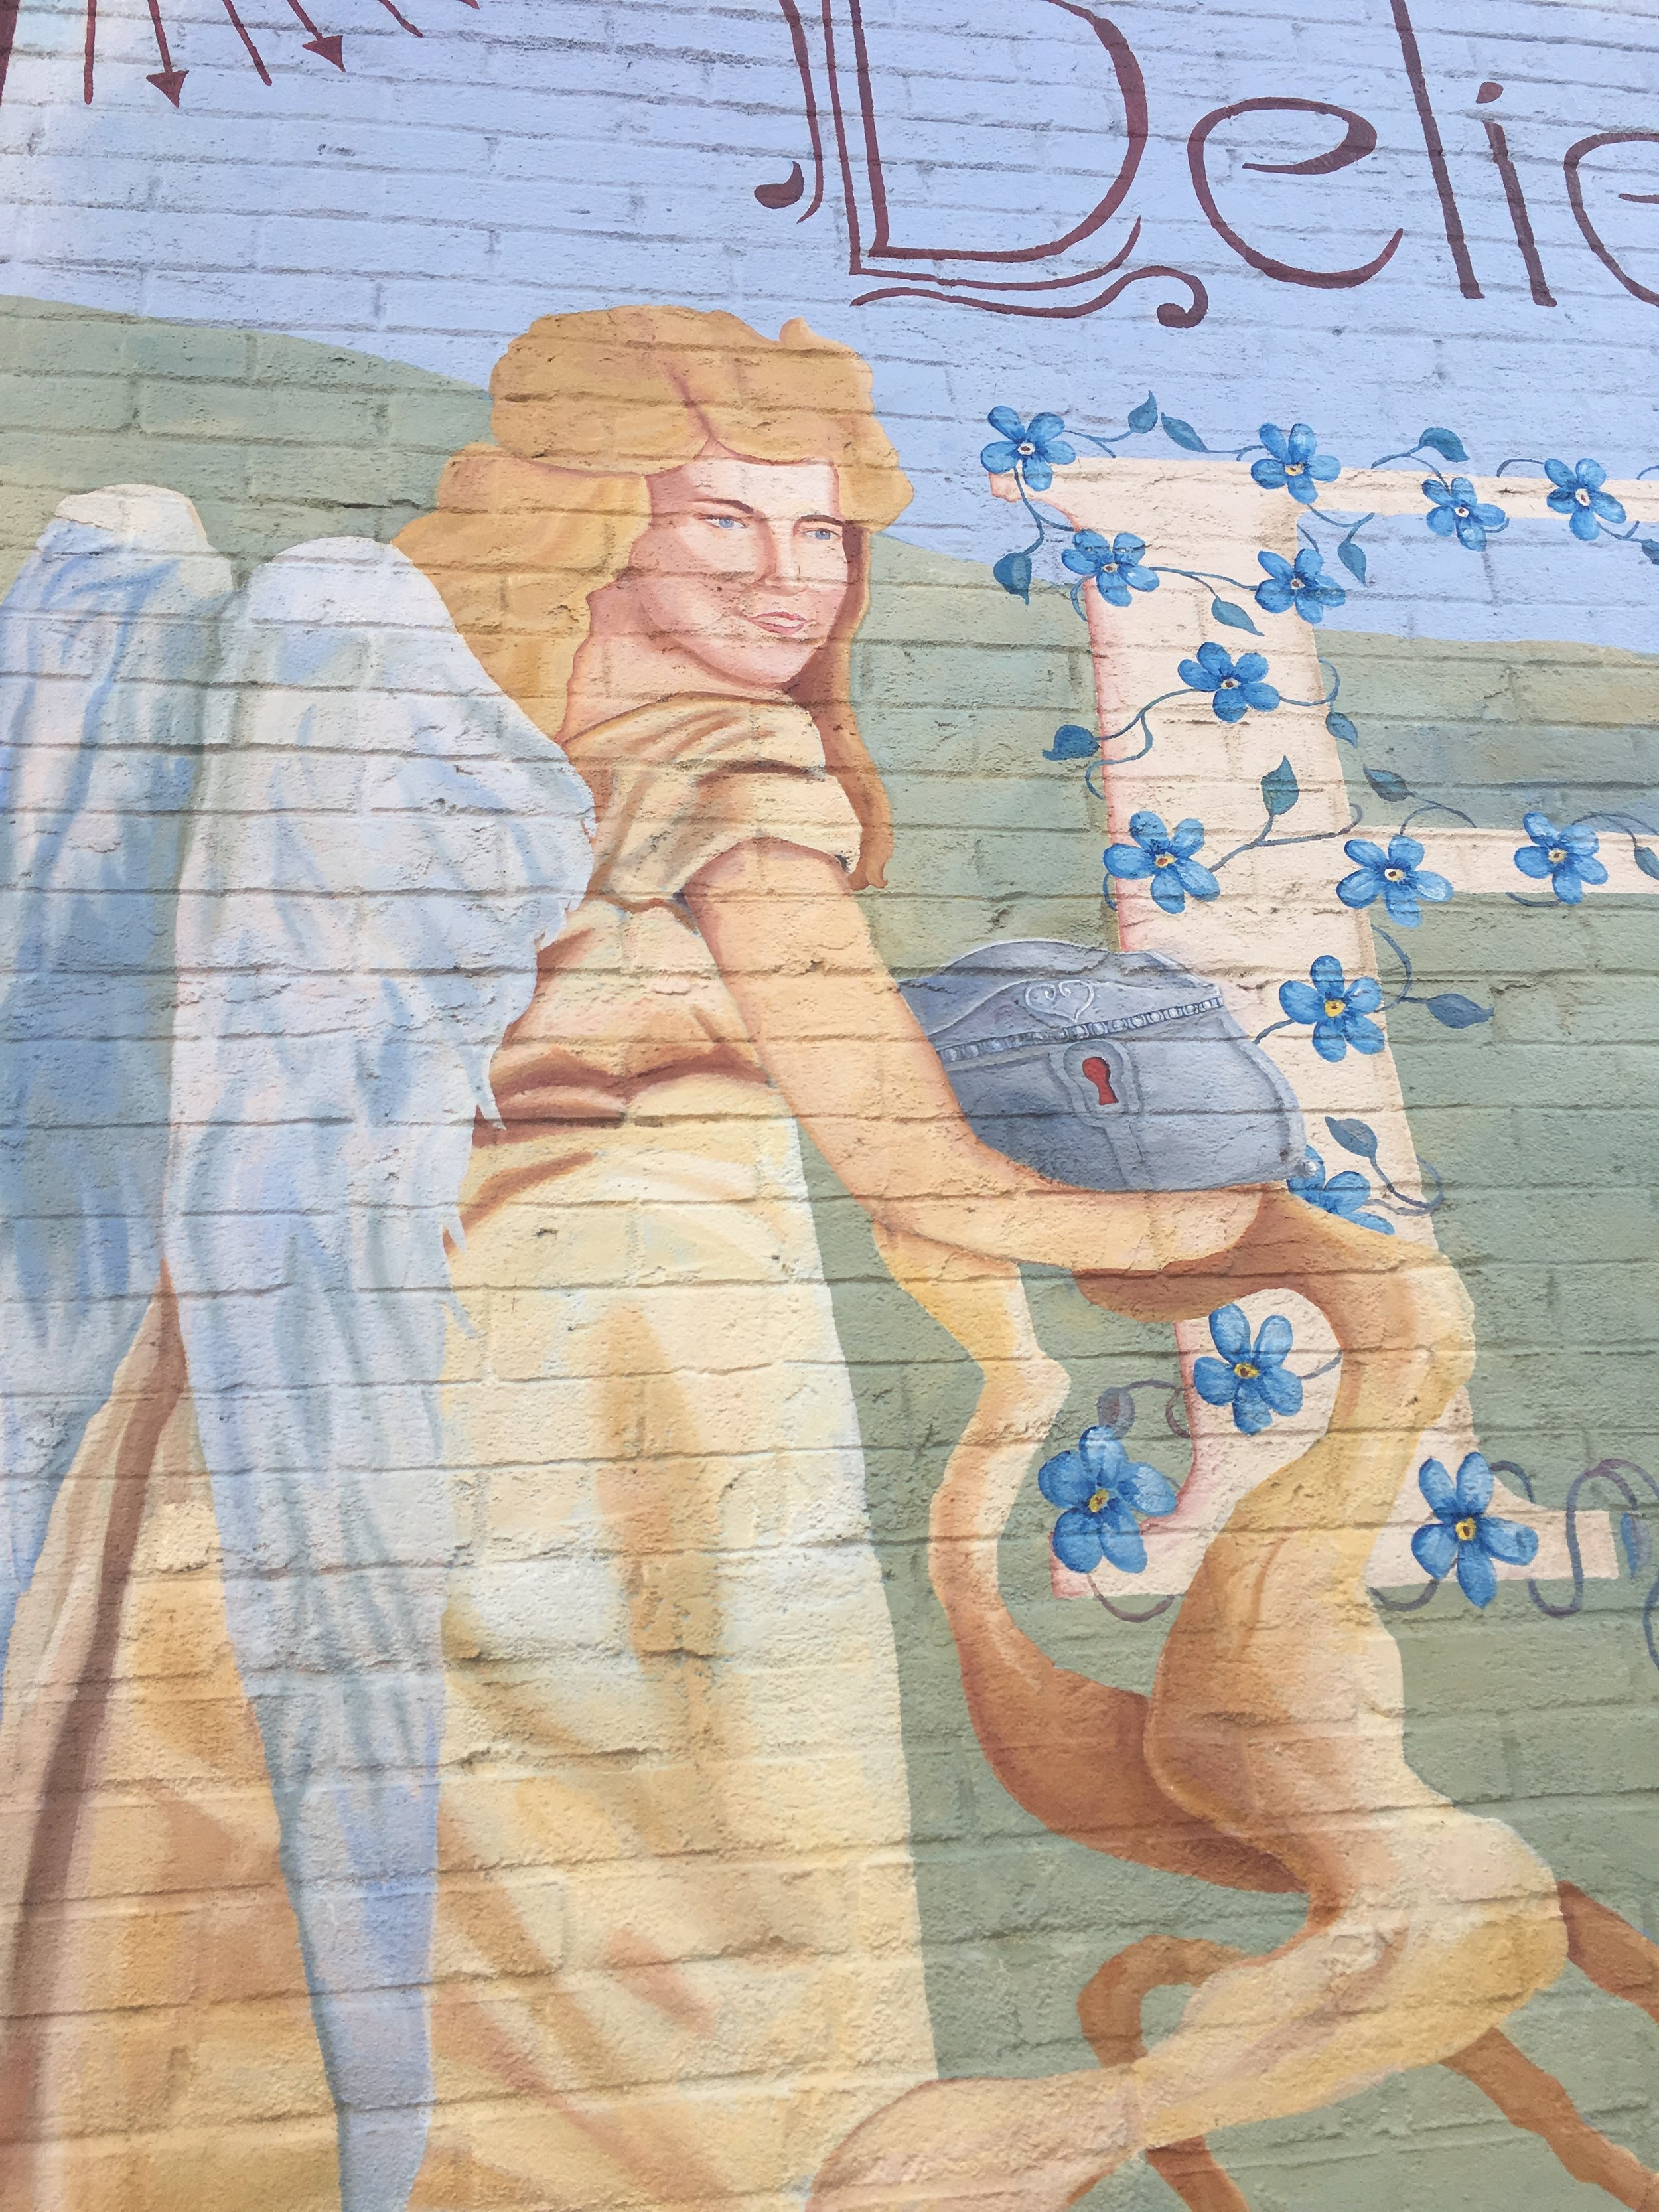 Beauty can be found in many ways along the Spoon River Valley Drive. This mural is one example.